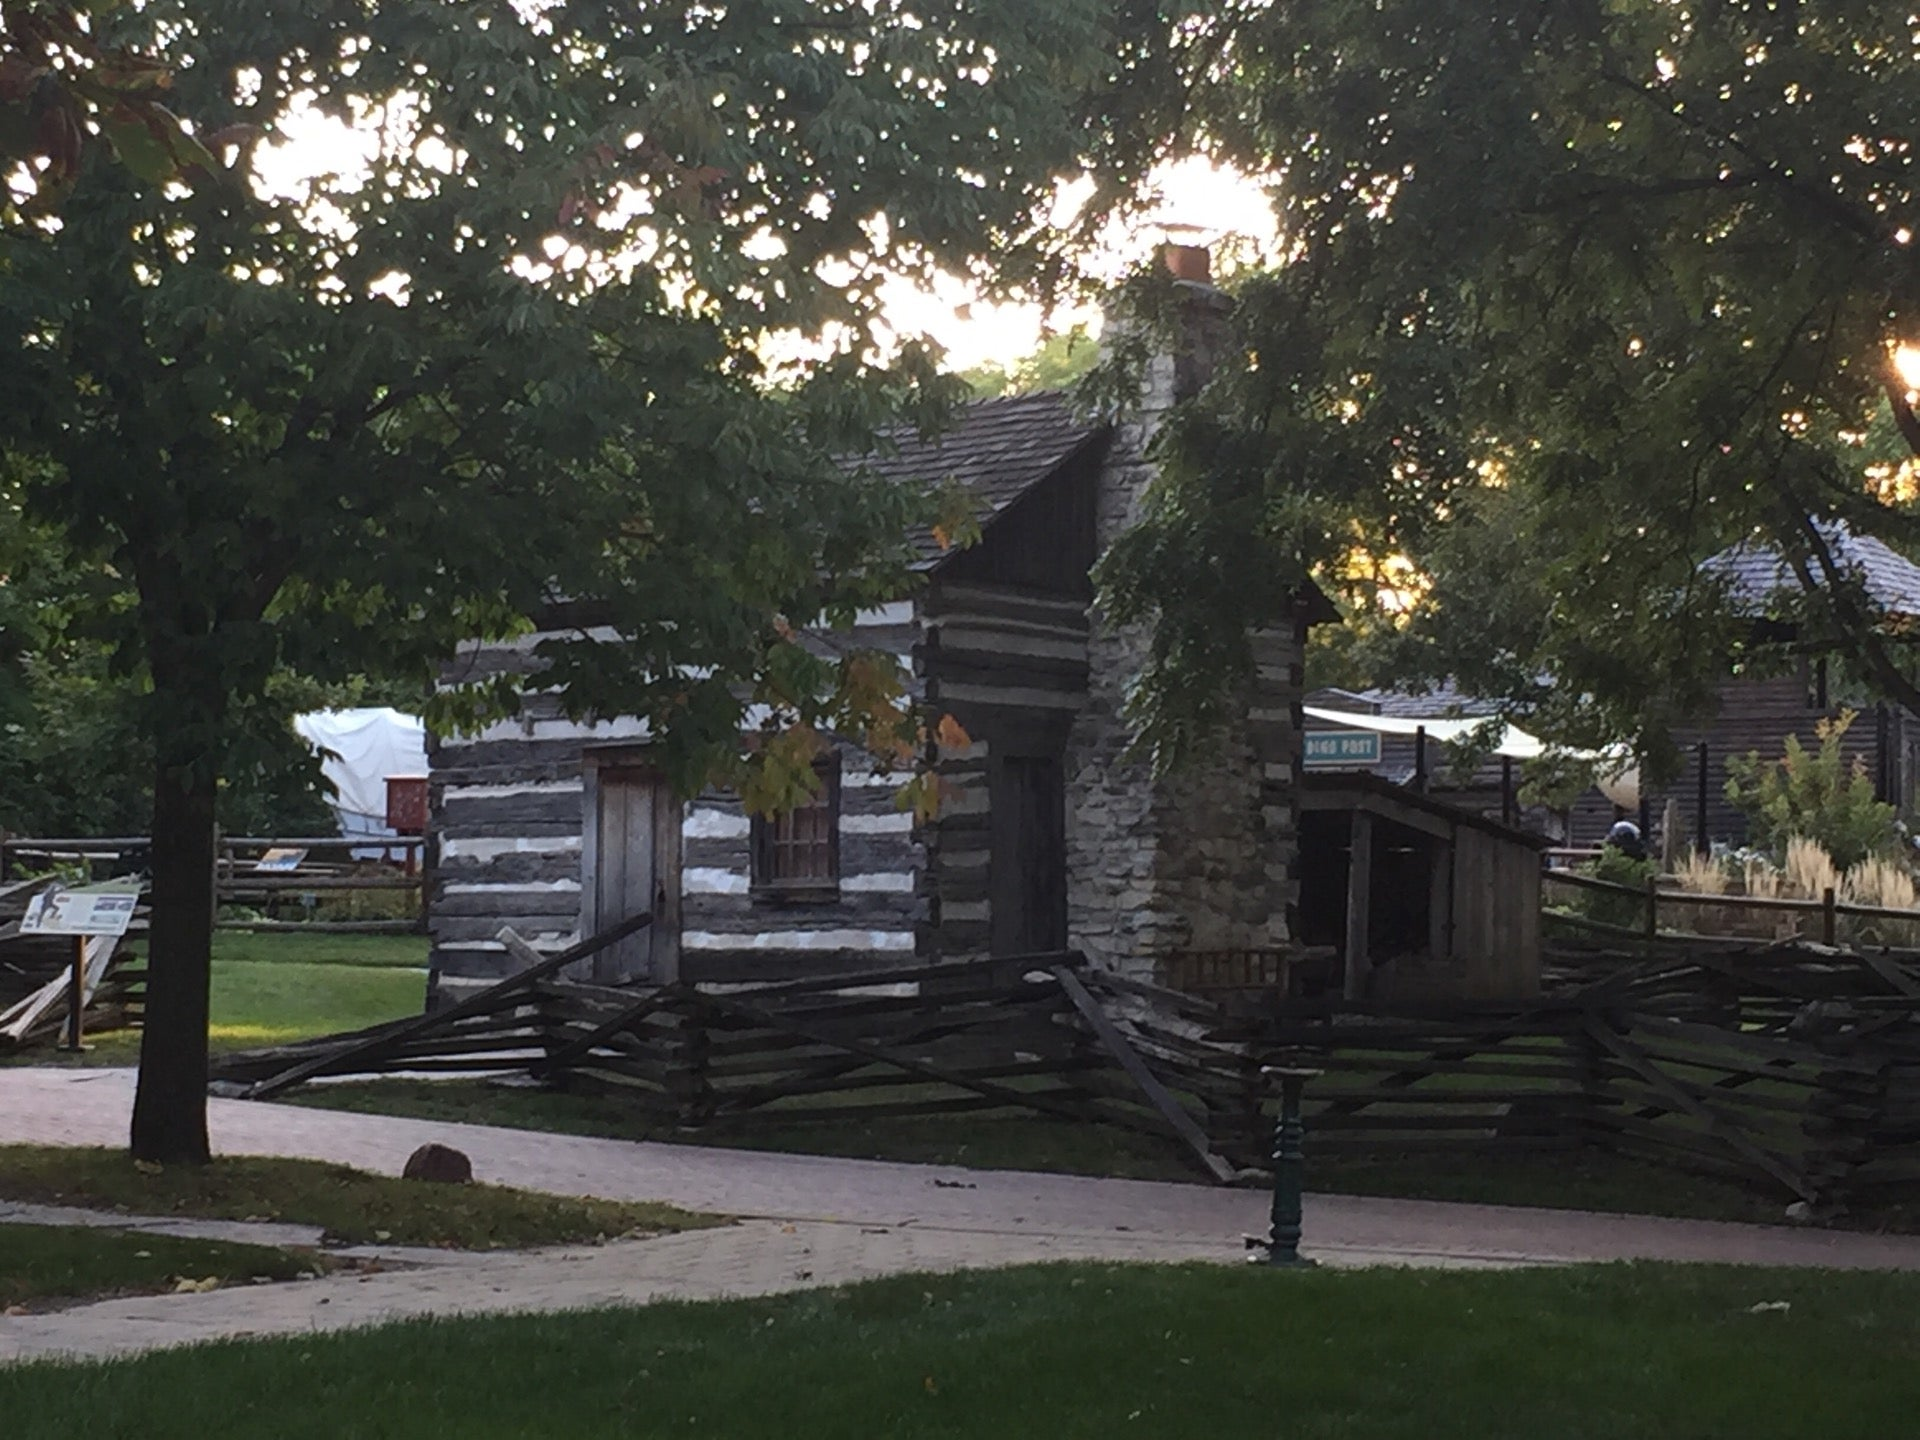 NAPER SETTLEMENT VILLAGE,a 19th- century outdoor history museum,wedding chapel